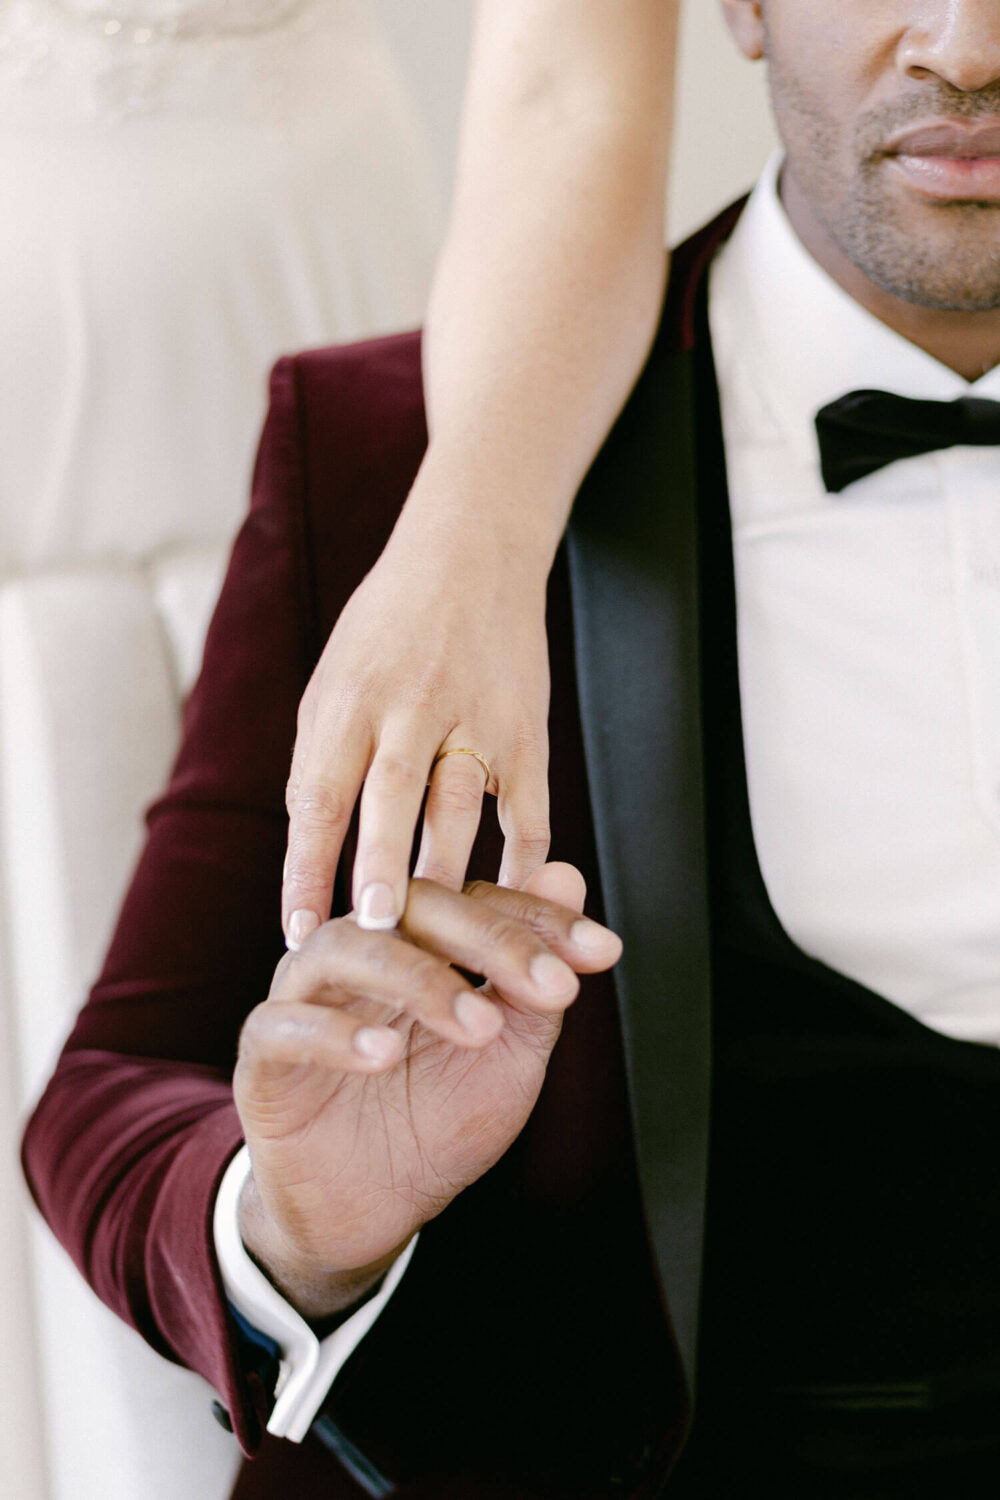 Lovers touching hands wedding - Wedding planner surrey